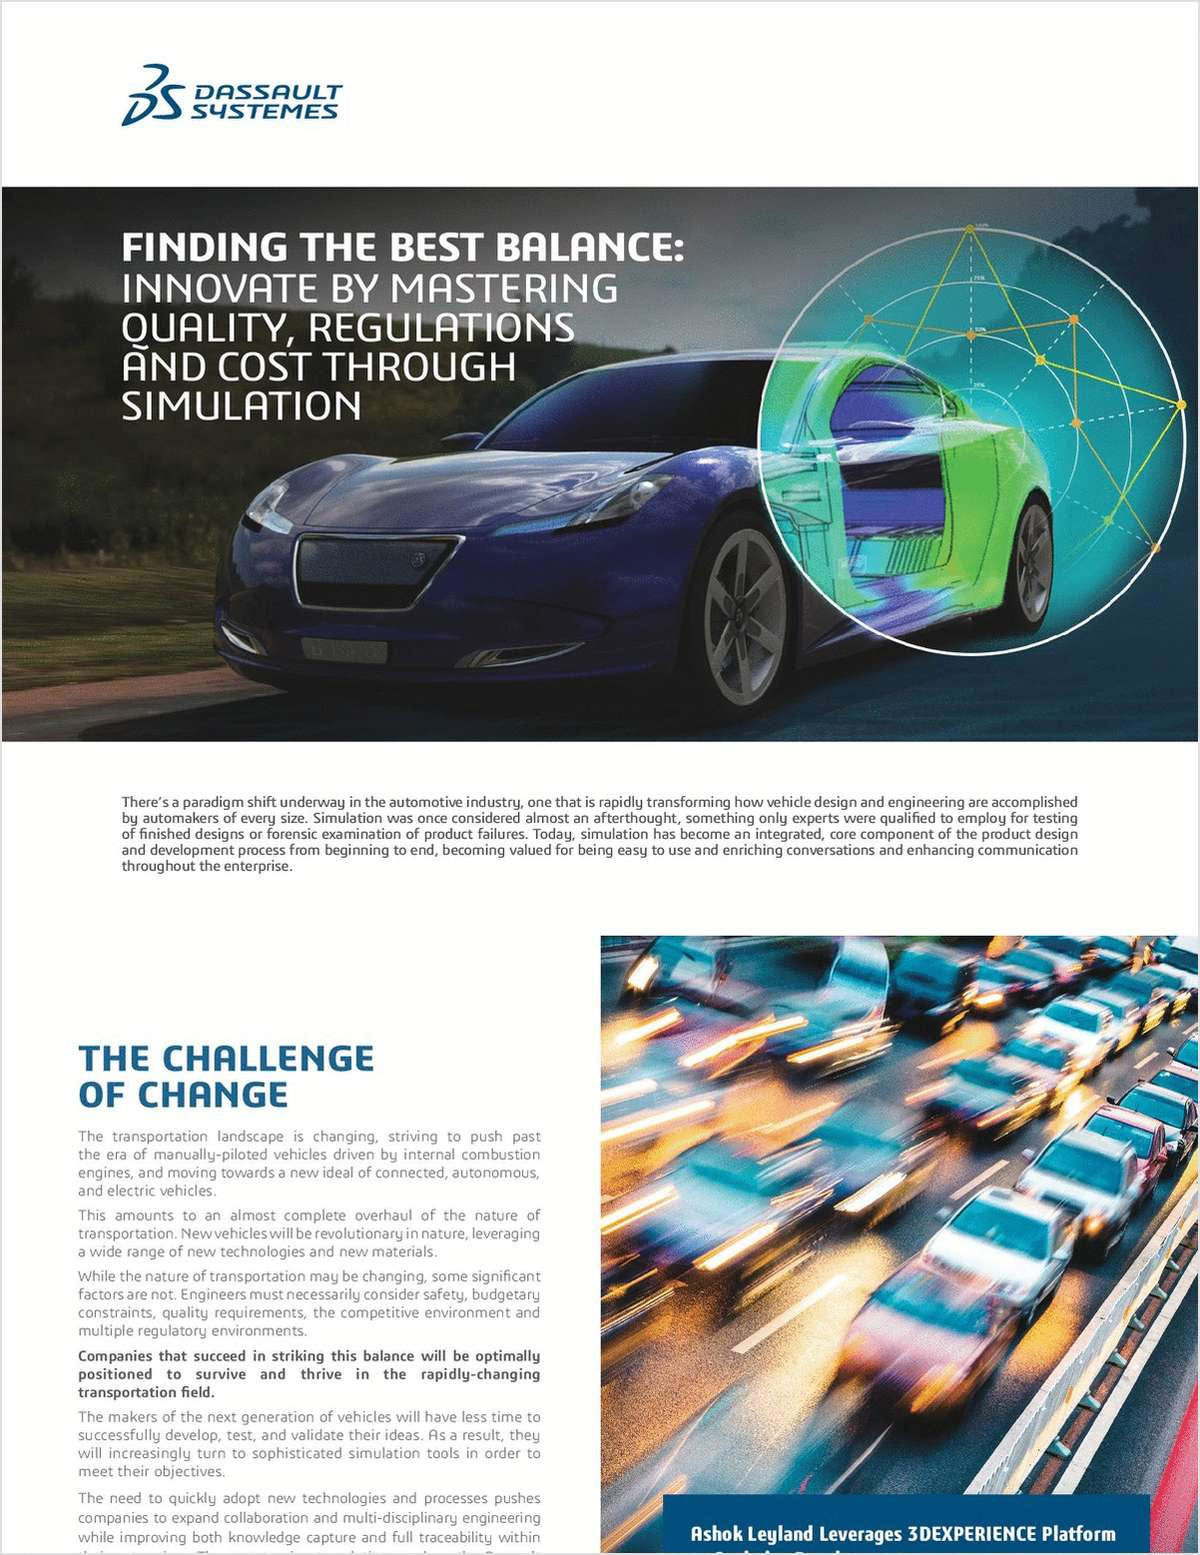 Finding the Best Balance: Innovate by Mastering Quality, Regulations and Cost Through Simulation